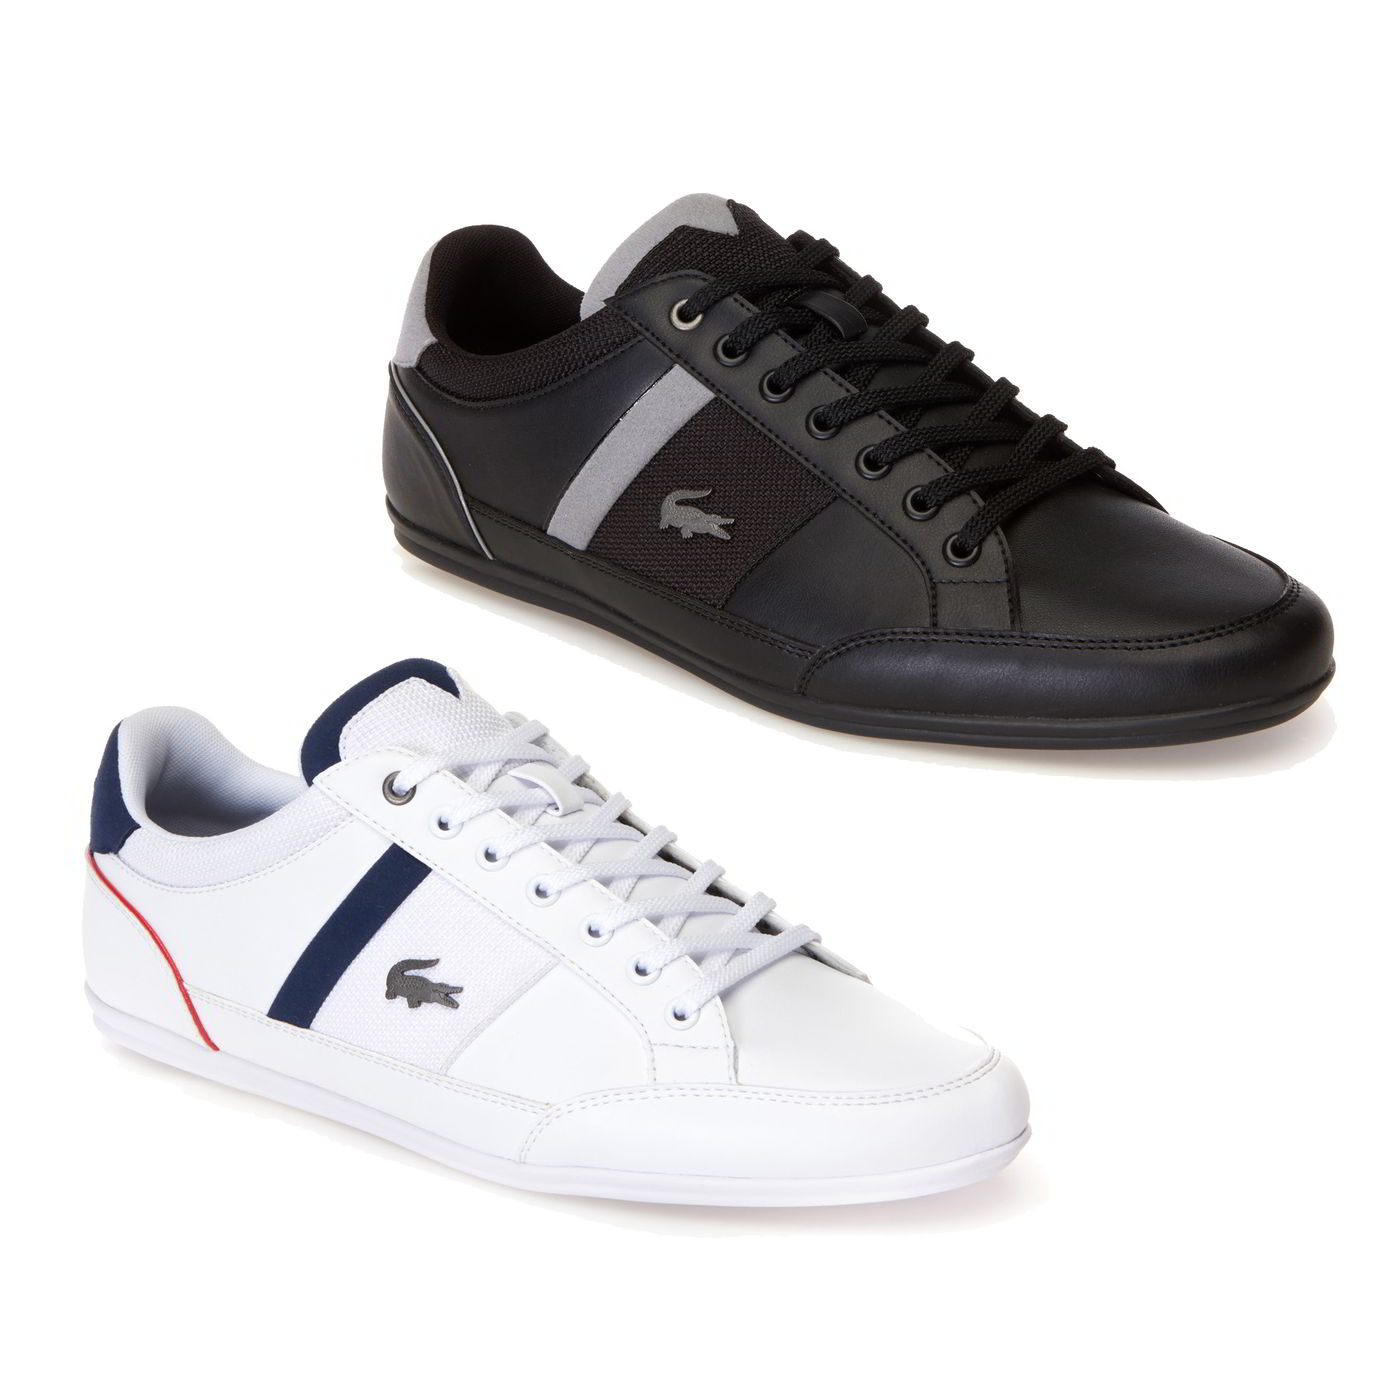 ccc9401cf Hard-wearing rubber outsole for durability and long lasting wear Lacoste  Chaymon 318 Mens ...